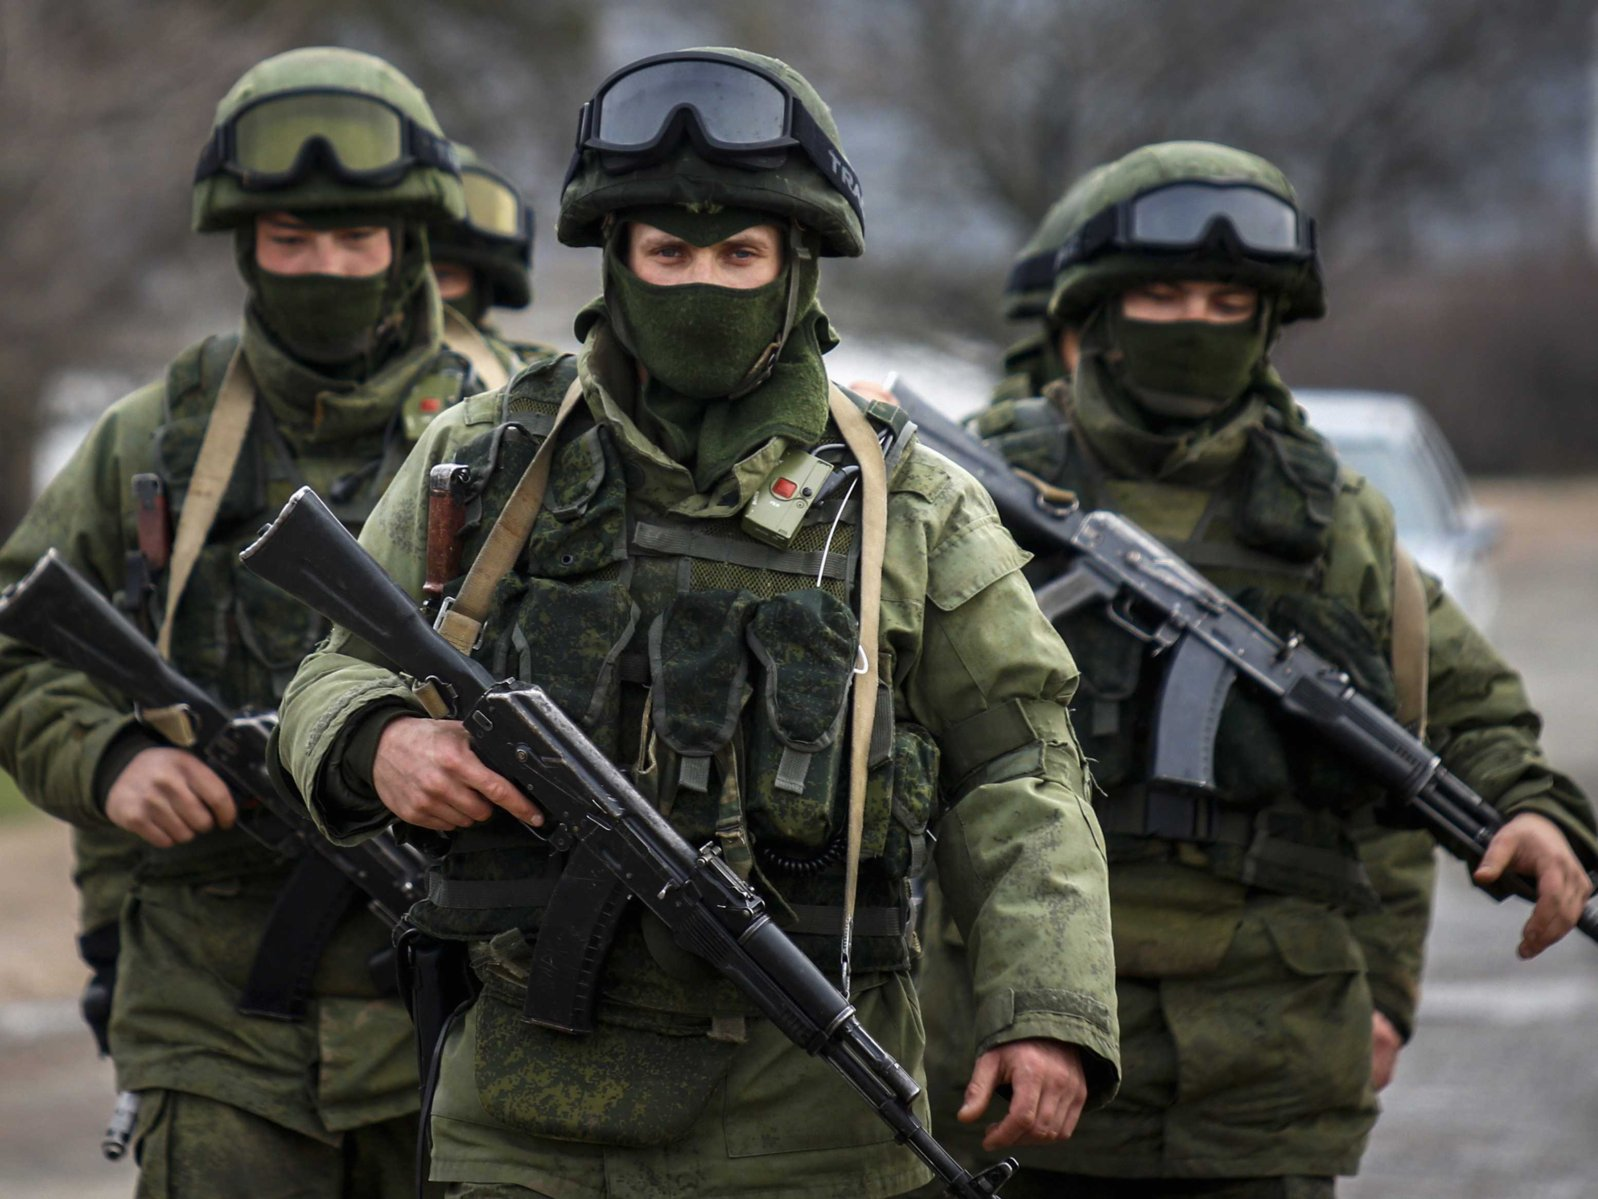 ukrainian-officer-russian-troops-opened-fire-at-crimea-base.jpg